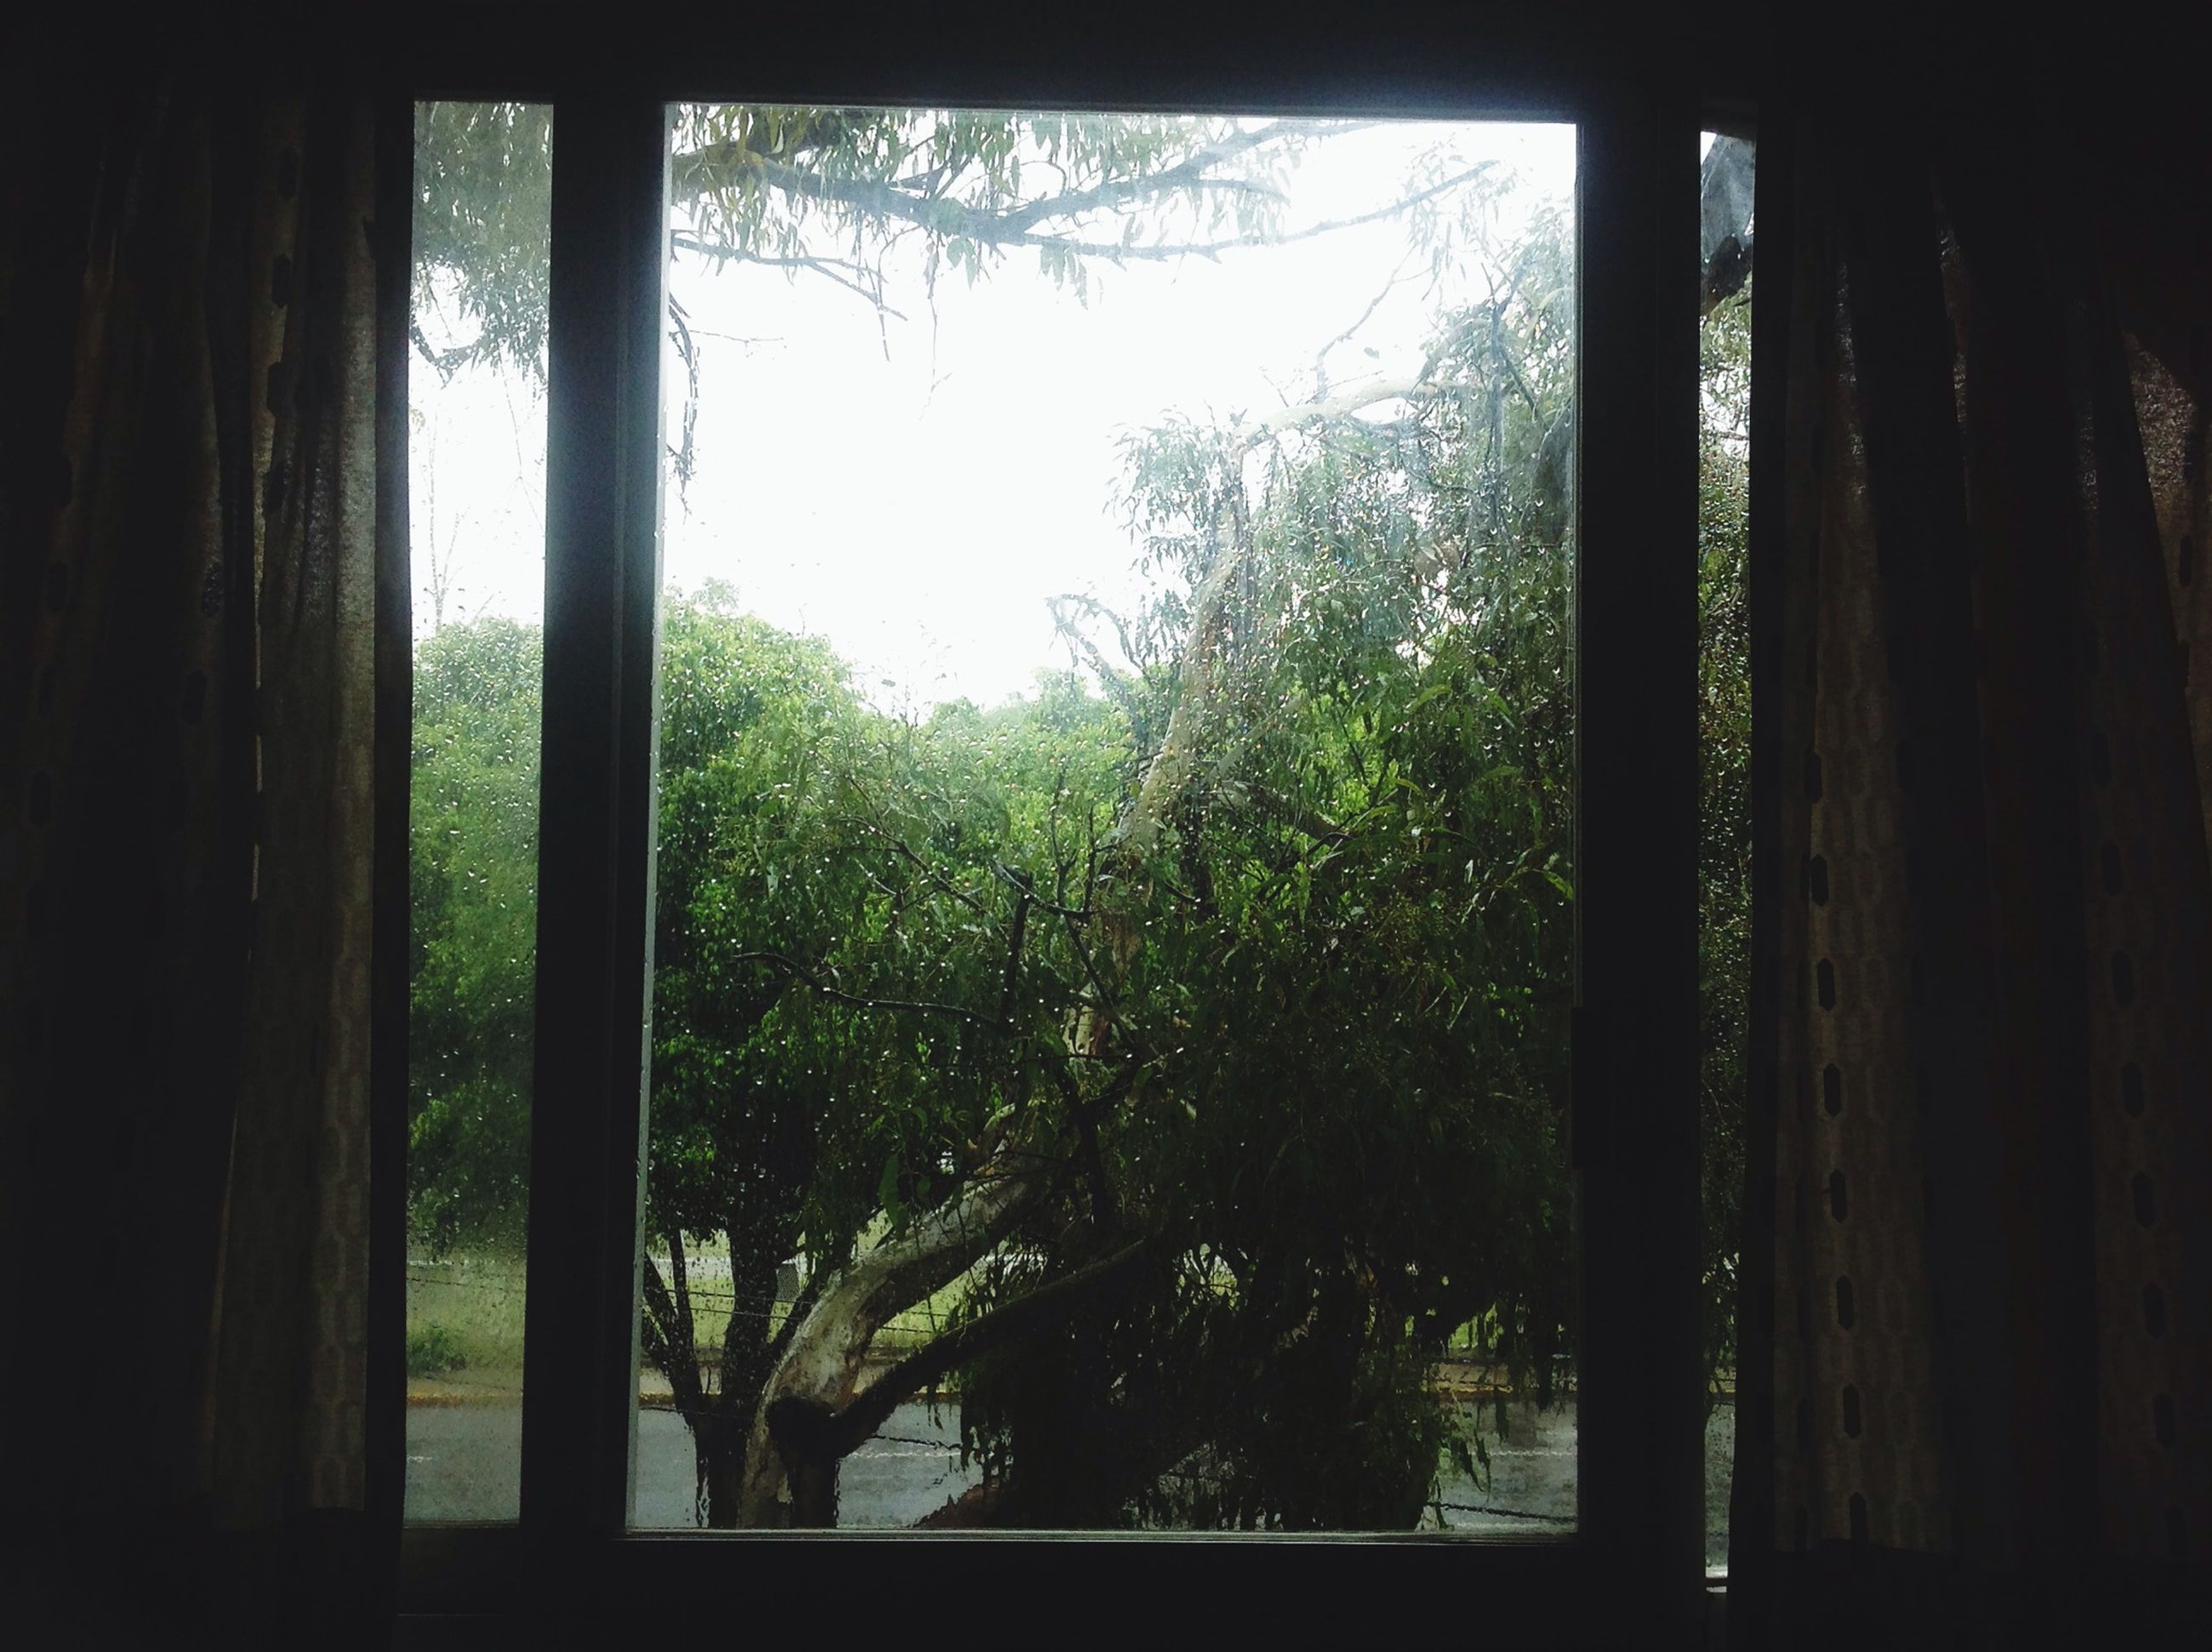 tree, window, indoors, growth, tree trunk, branch, nature, tranquility, green color, glass - material, transparent, day, silhouette, sunlight, no people, clear sky, sky, plant, tranquil scene, beauty in nature